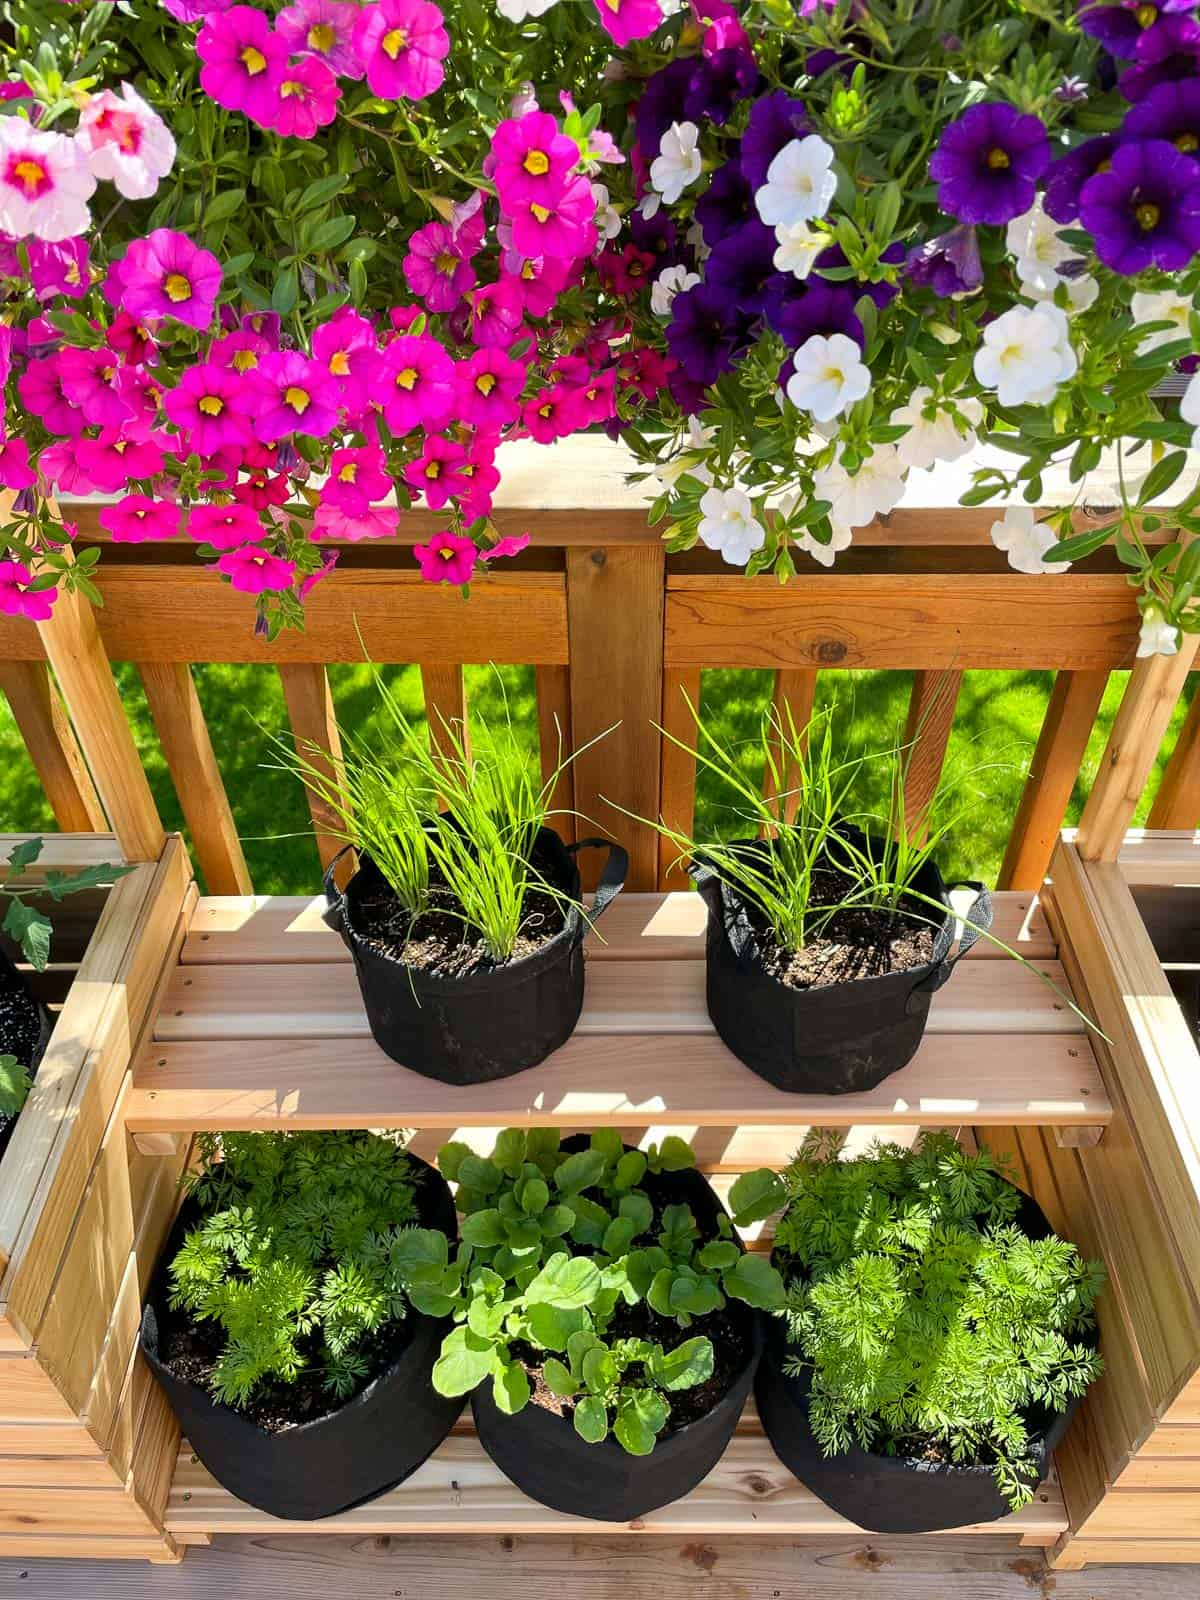 vegetable garden on shelves with hanging baskets above